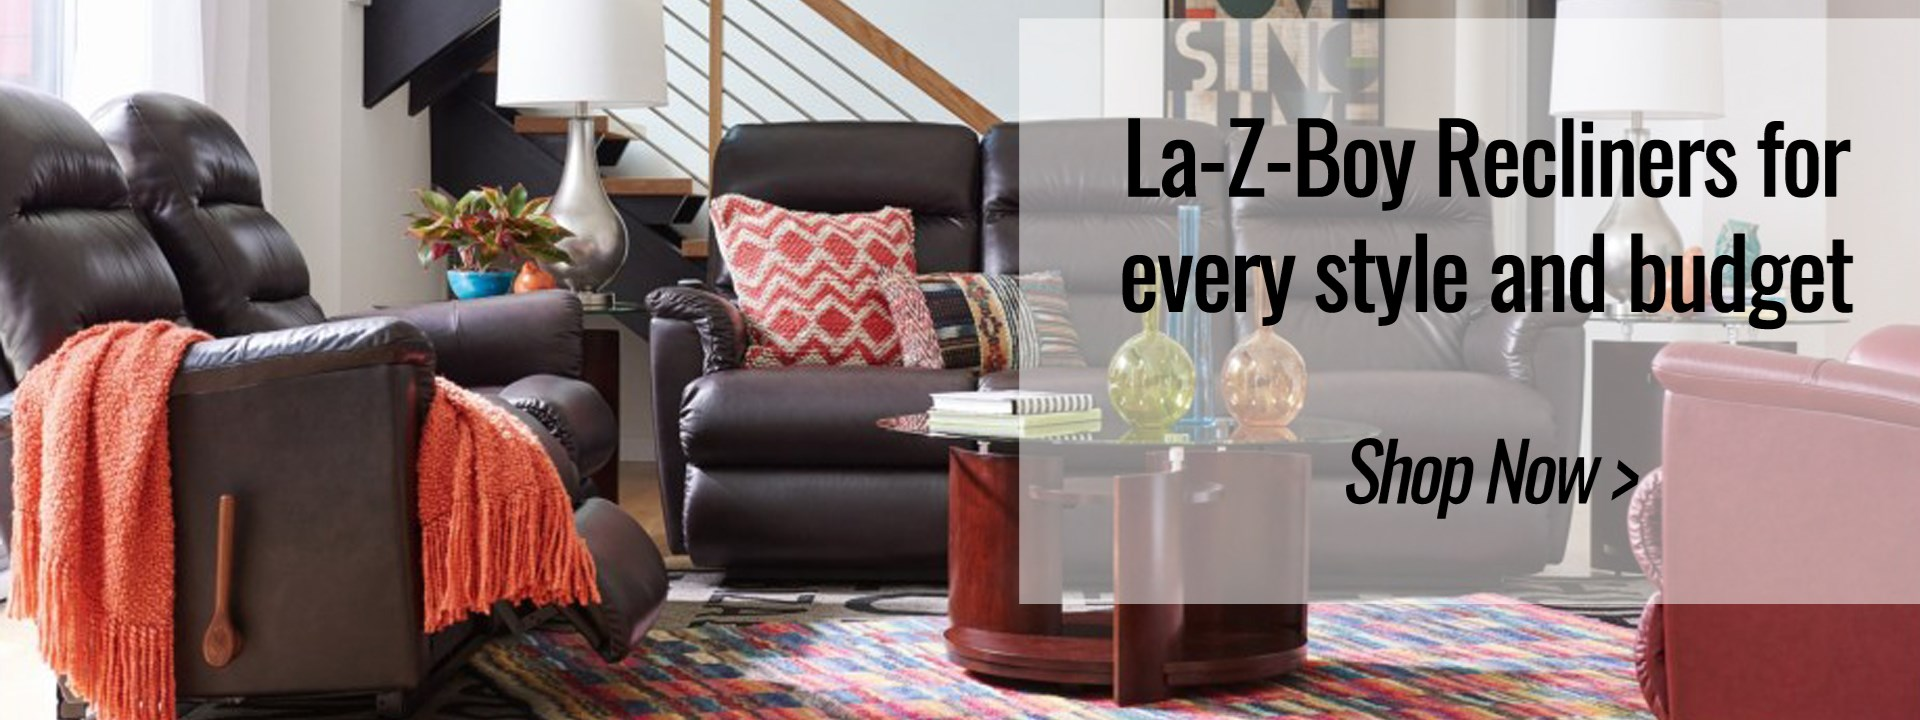 Bon New Arrival Sofa Only 299 La Z Boy Recliners For Every Style And Budget |  Shop Now ...